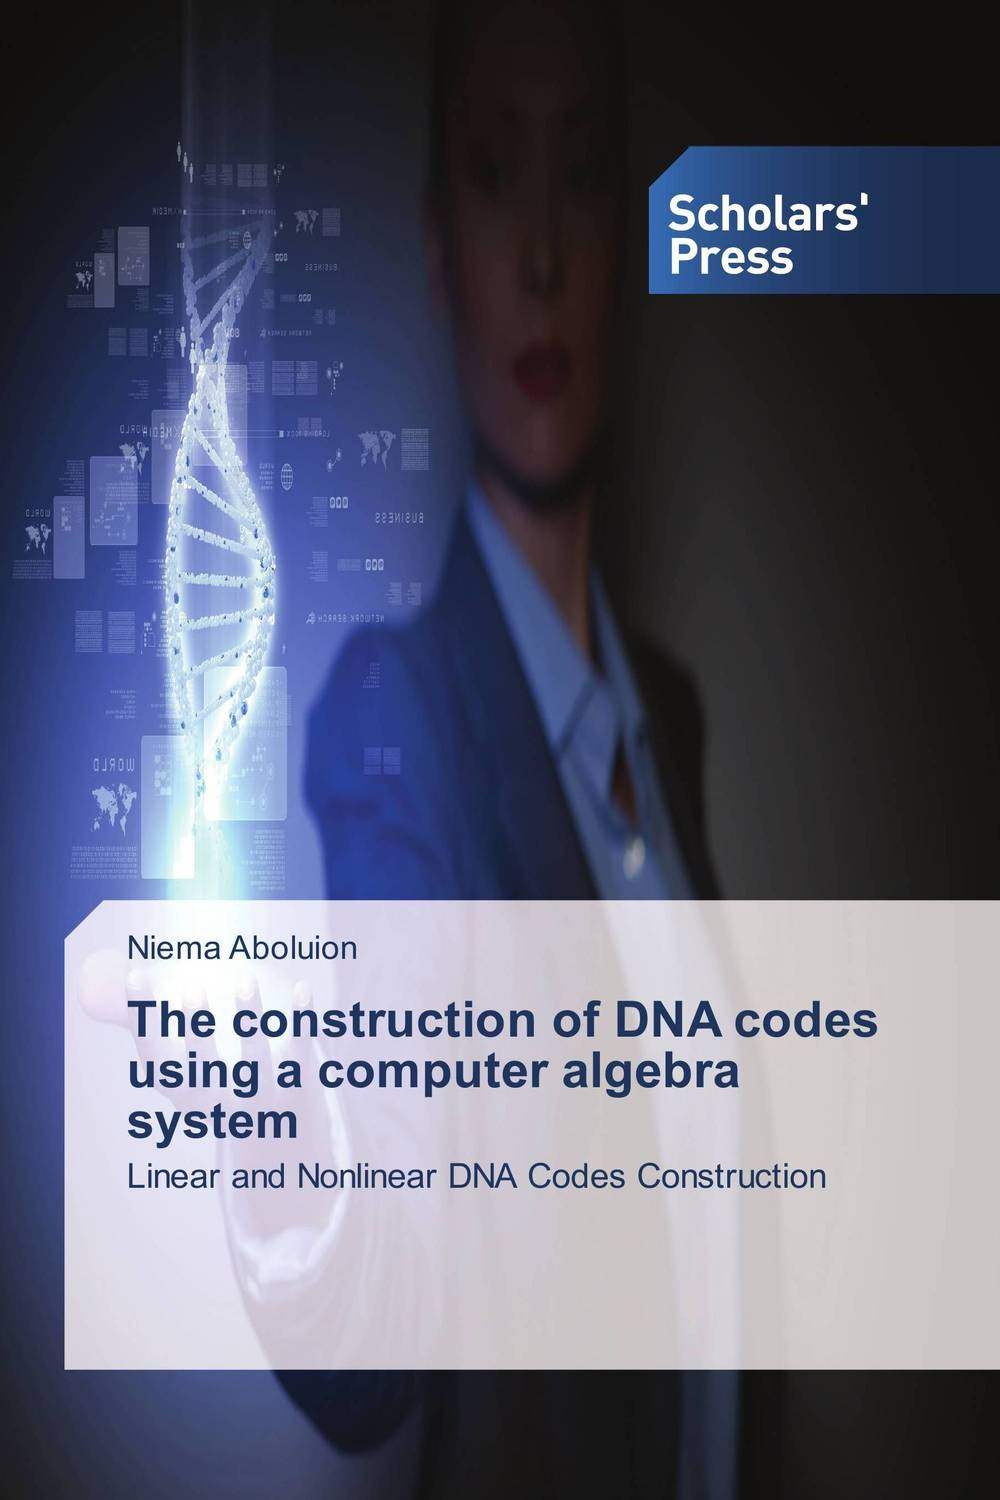 The construction of DNA codes using a computer algebra system fei dai and ming lu applied close range photogrammetry in construction